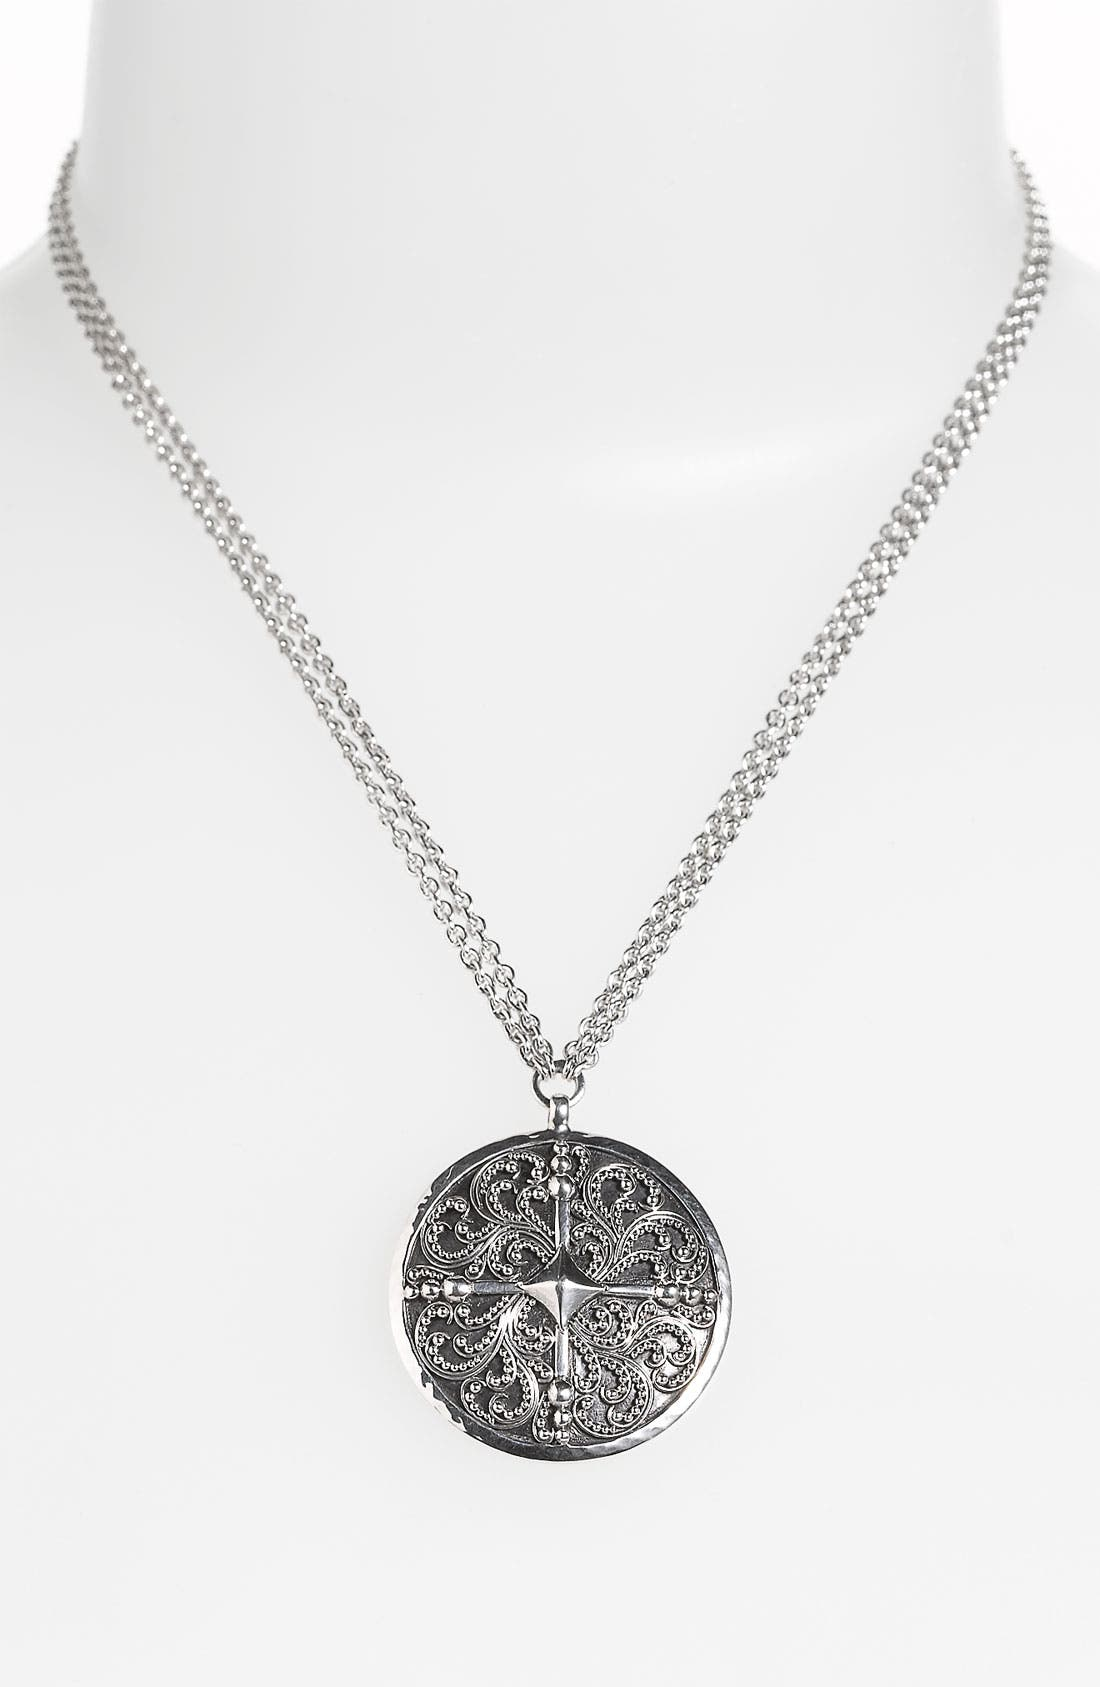 Main Image - Lois Hill 'Haveli' Round Pendant Necklace